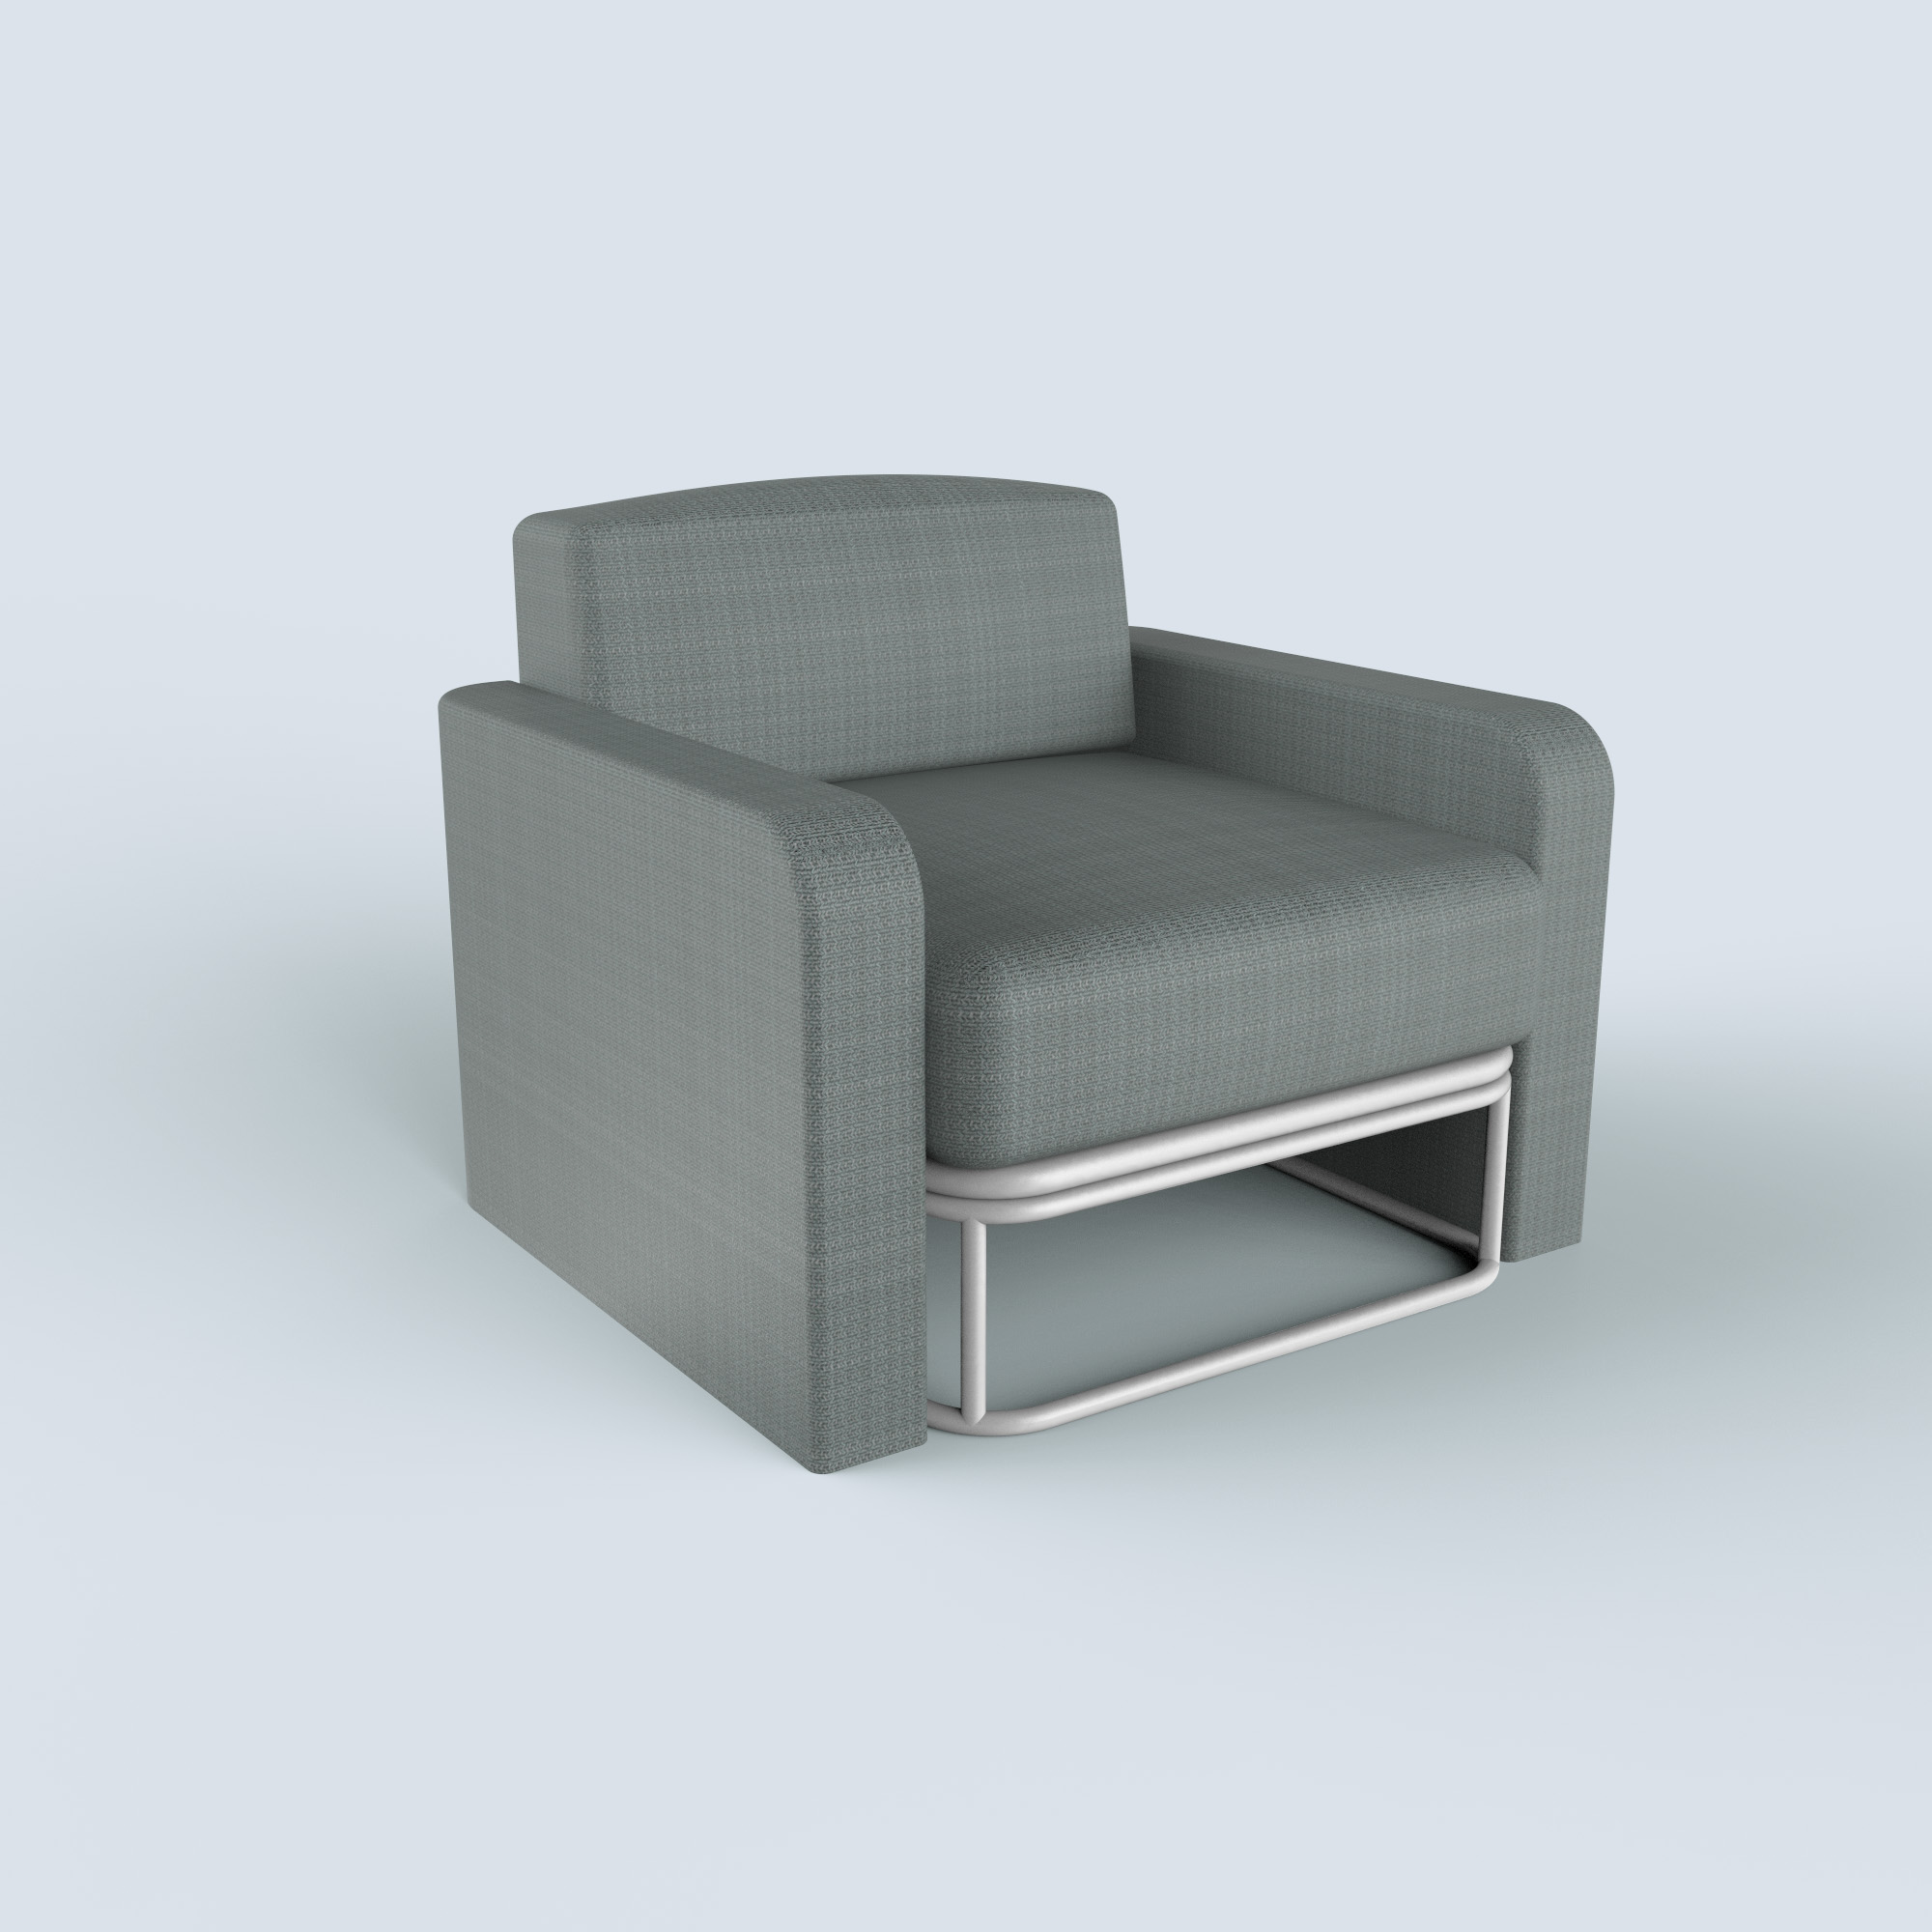 Chair Render.png